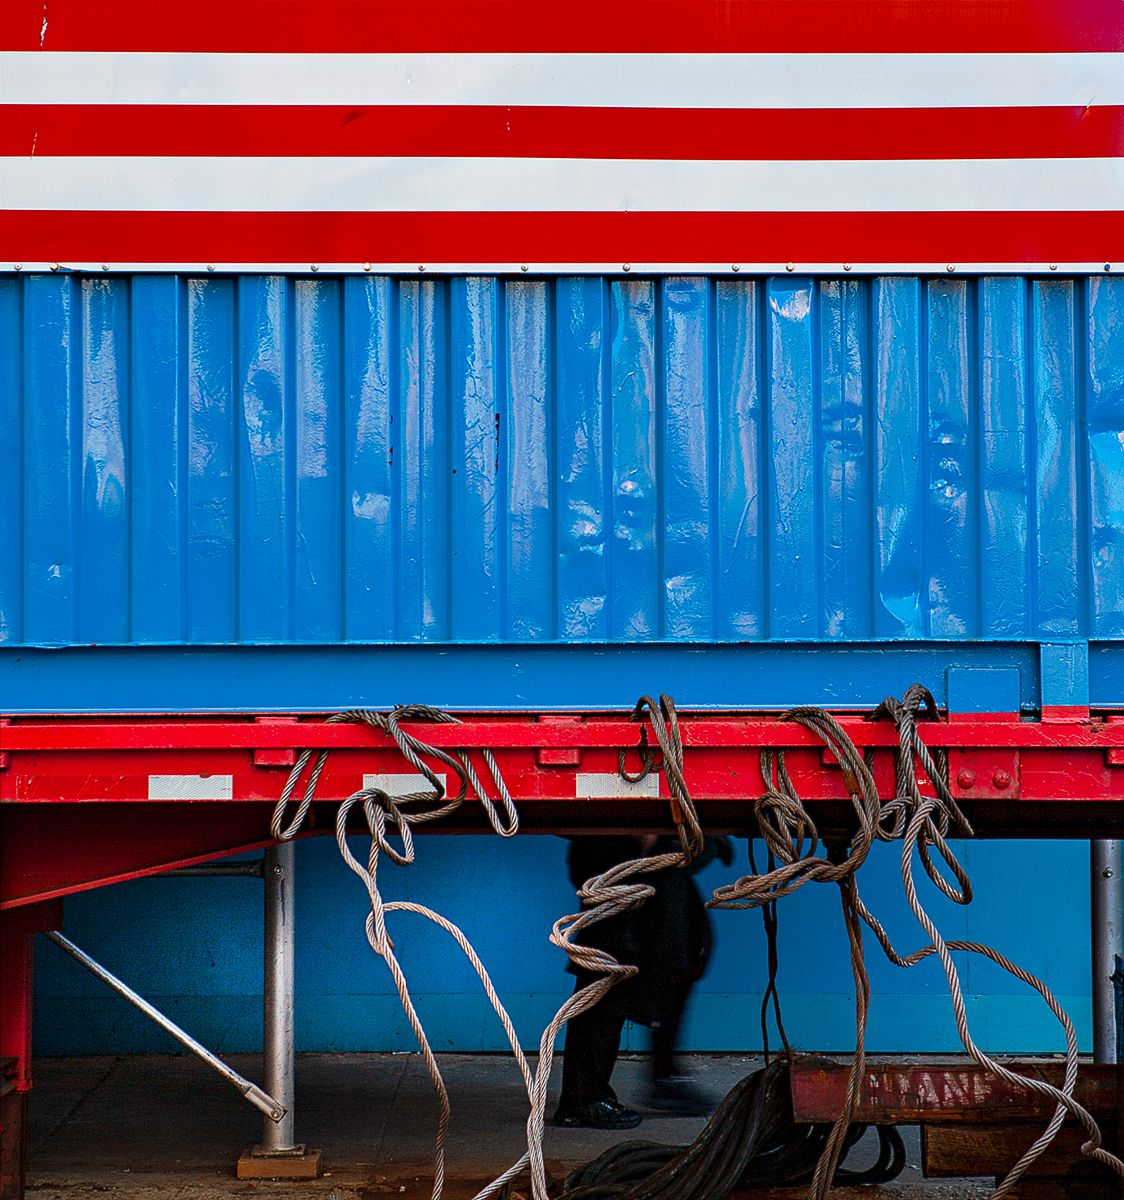 LB_USflag_Blue_container_#2_I1S0020_CROP_F.jpg